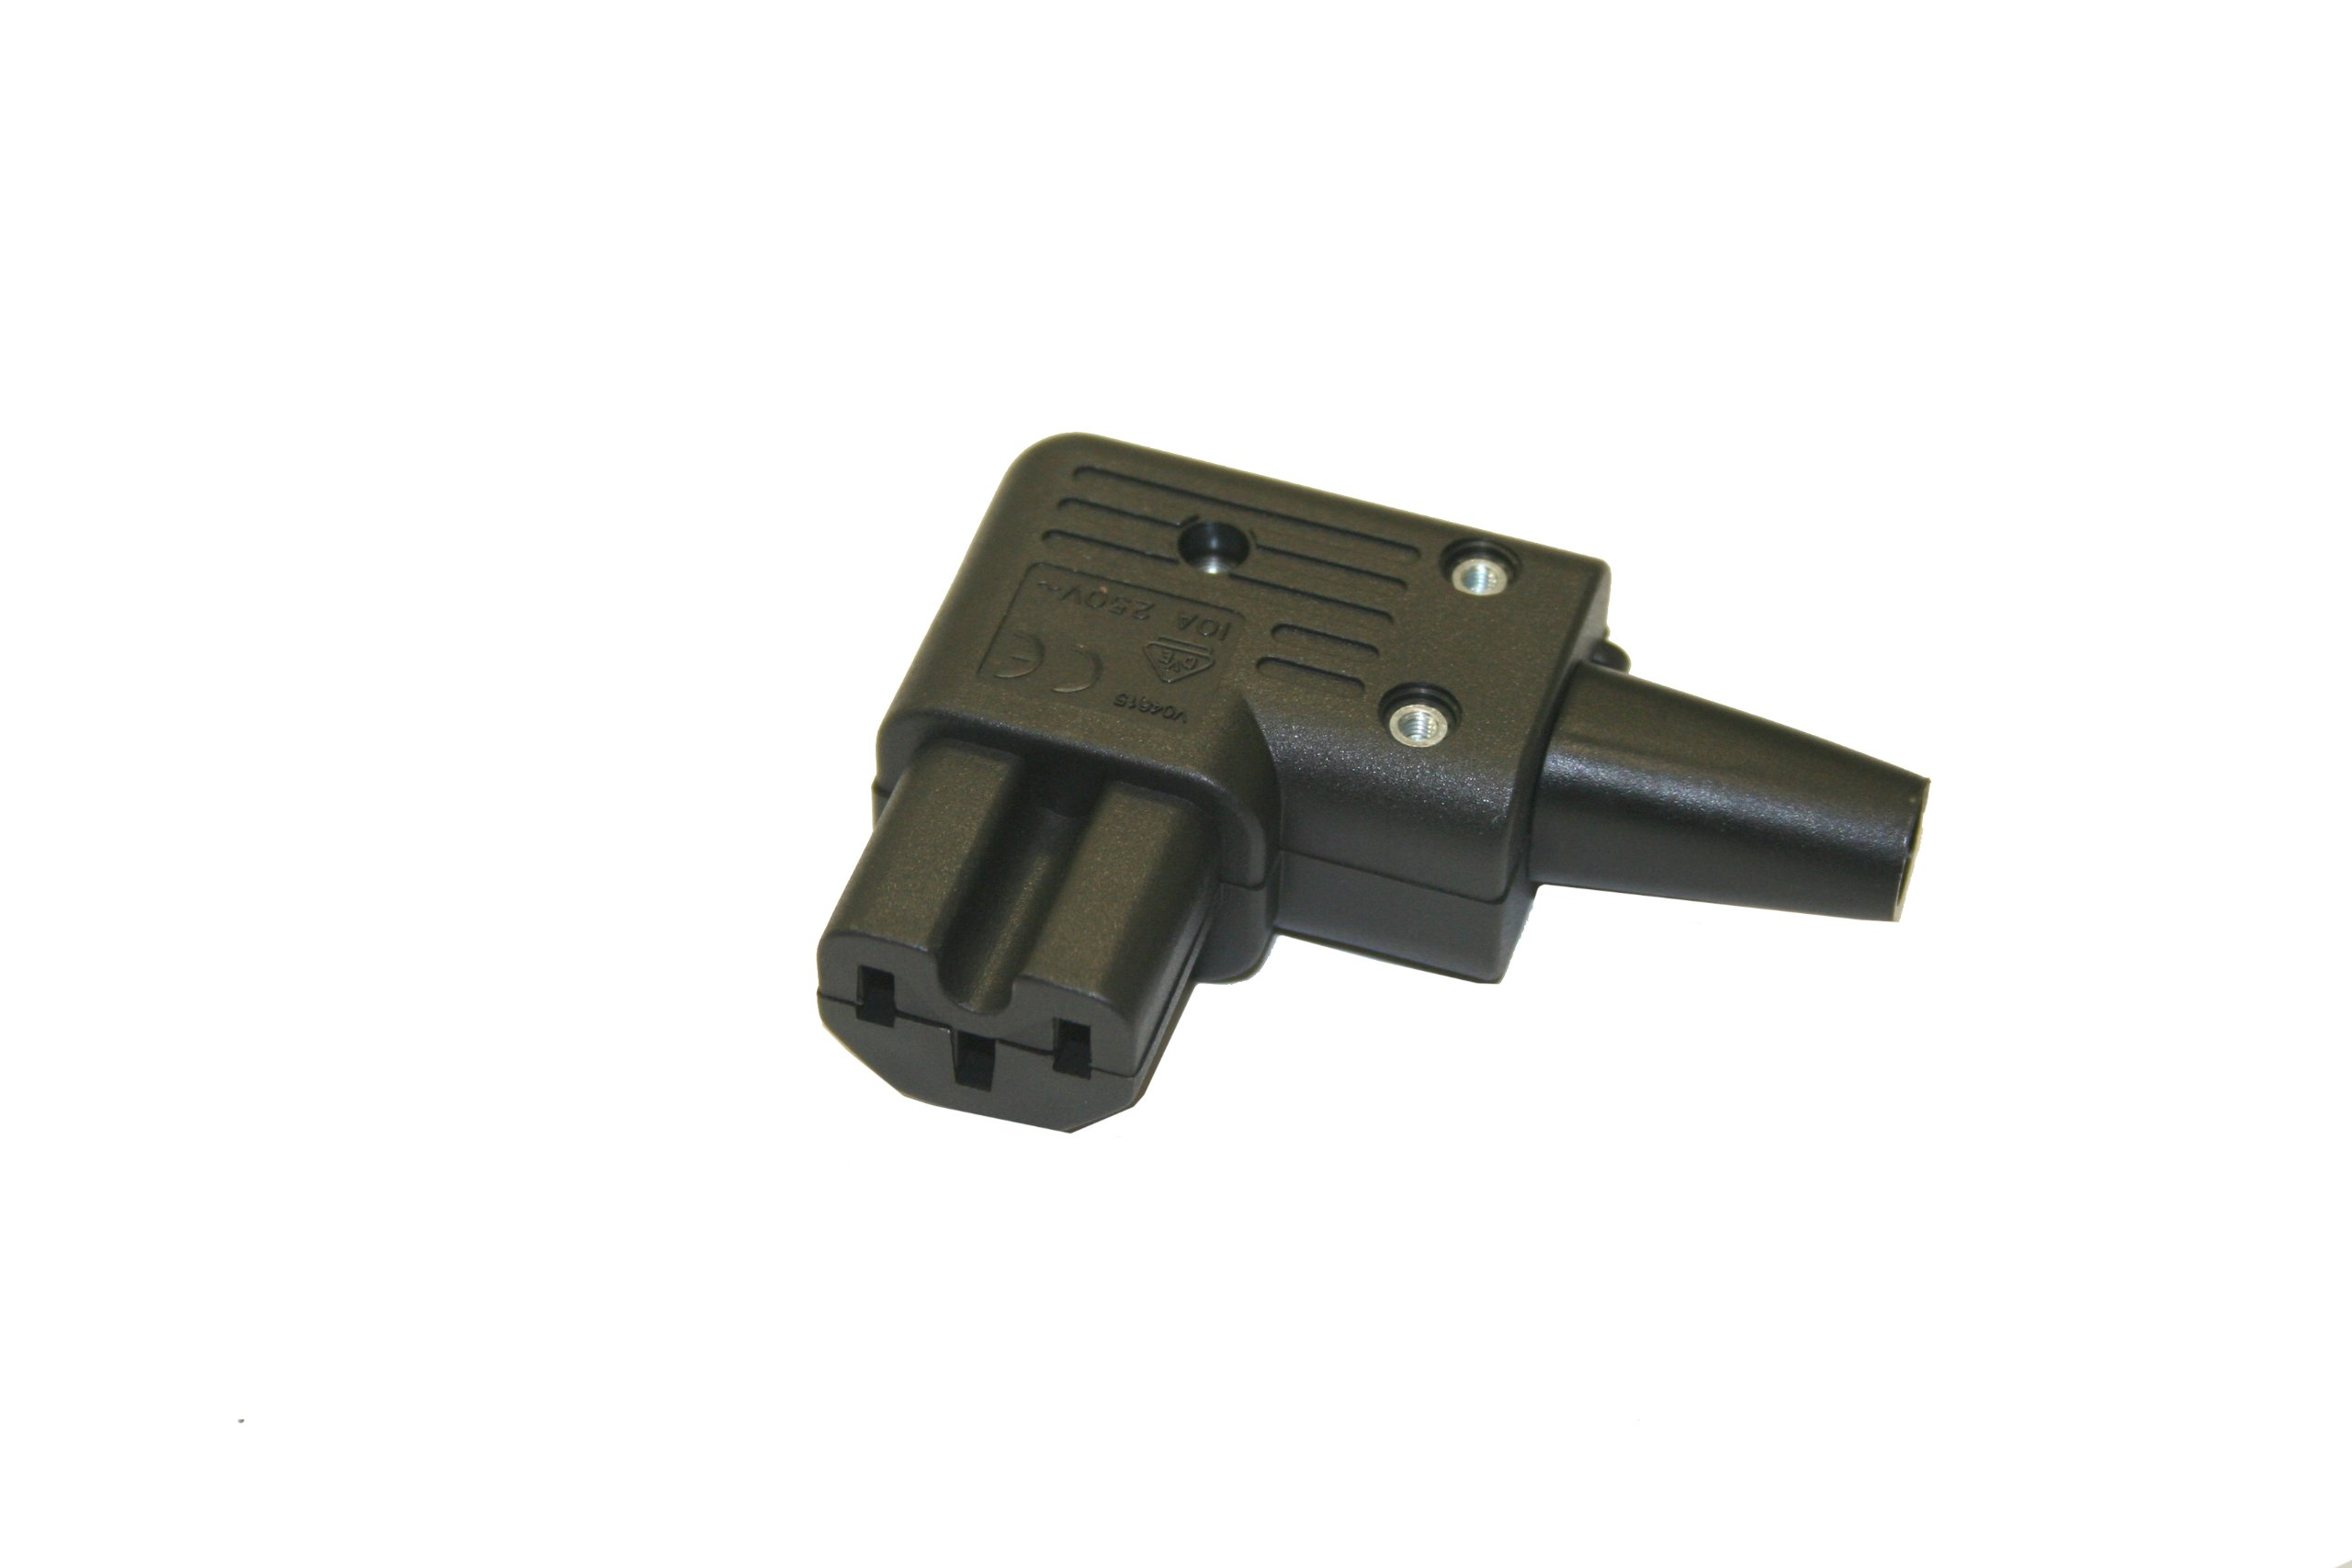 Interpower 83012720 IEC 60320 C15 Angled Hot Rewireable Connector, IEC 60320 C15 Socket Type, Black, 10A/15A Rating, 250VAC Rating